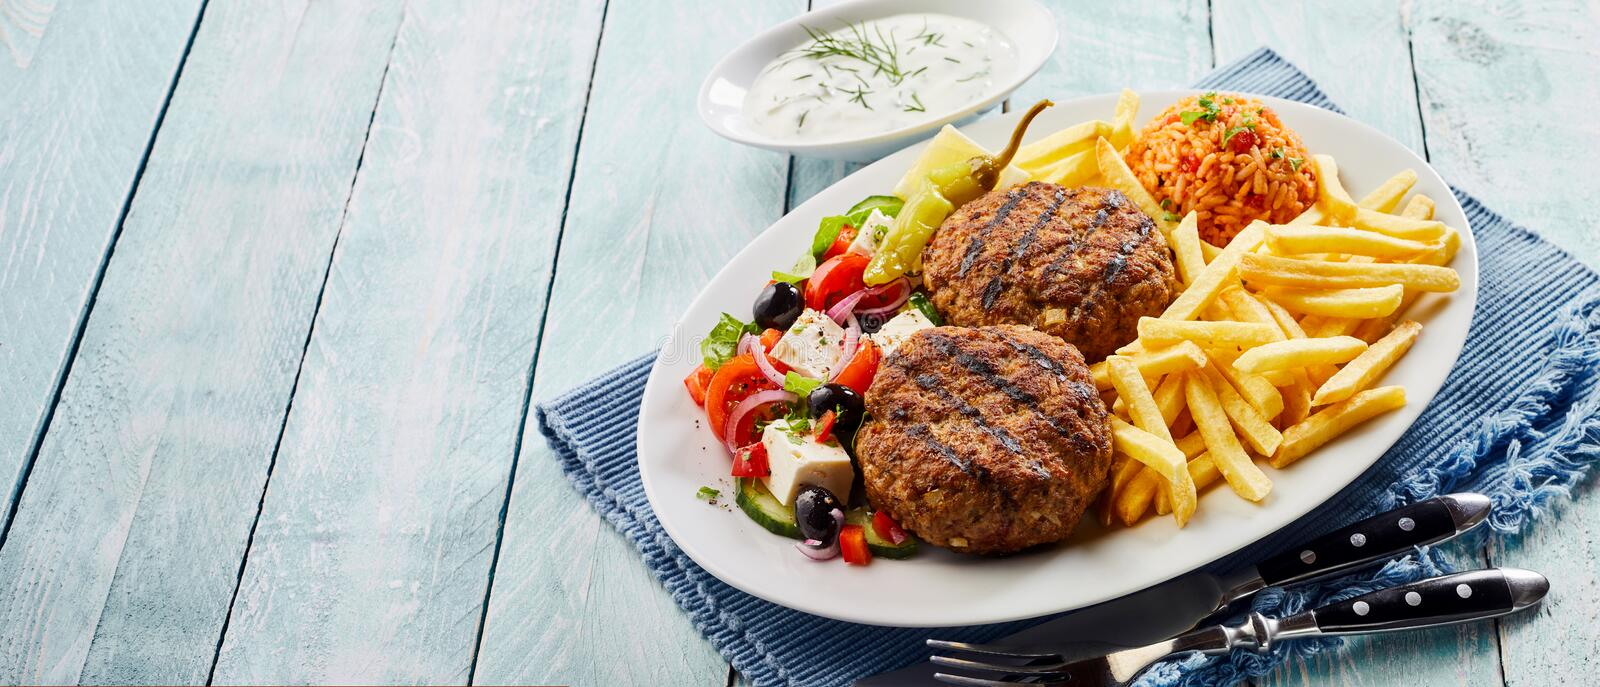 Bifteki, or Greek meat balls, with salad and chips royalty free stock image